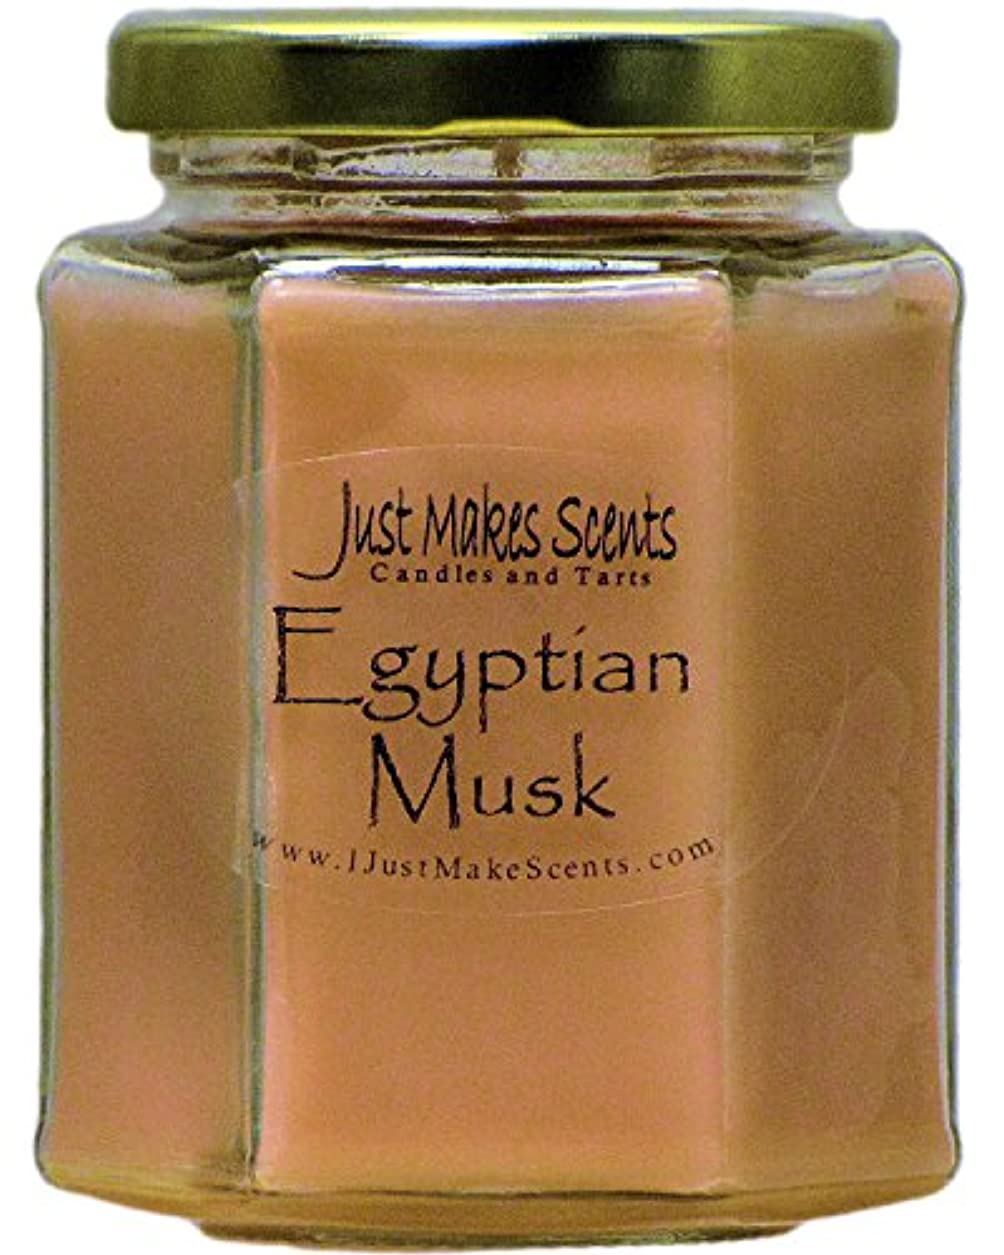 蛇行準備実り多いEgyptian Musk Scented Blended大豆キャンドルby Just Makes Scents8オンス。。。 1 Candle C03809HCNL